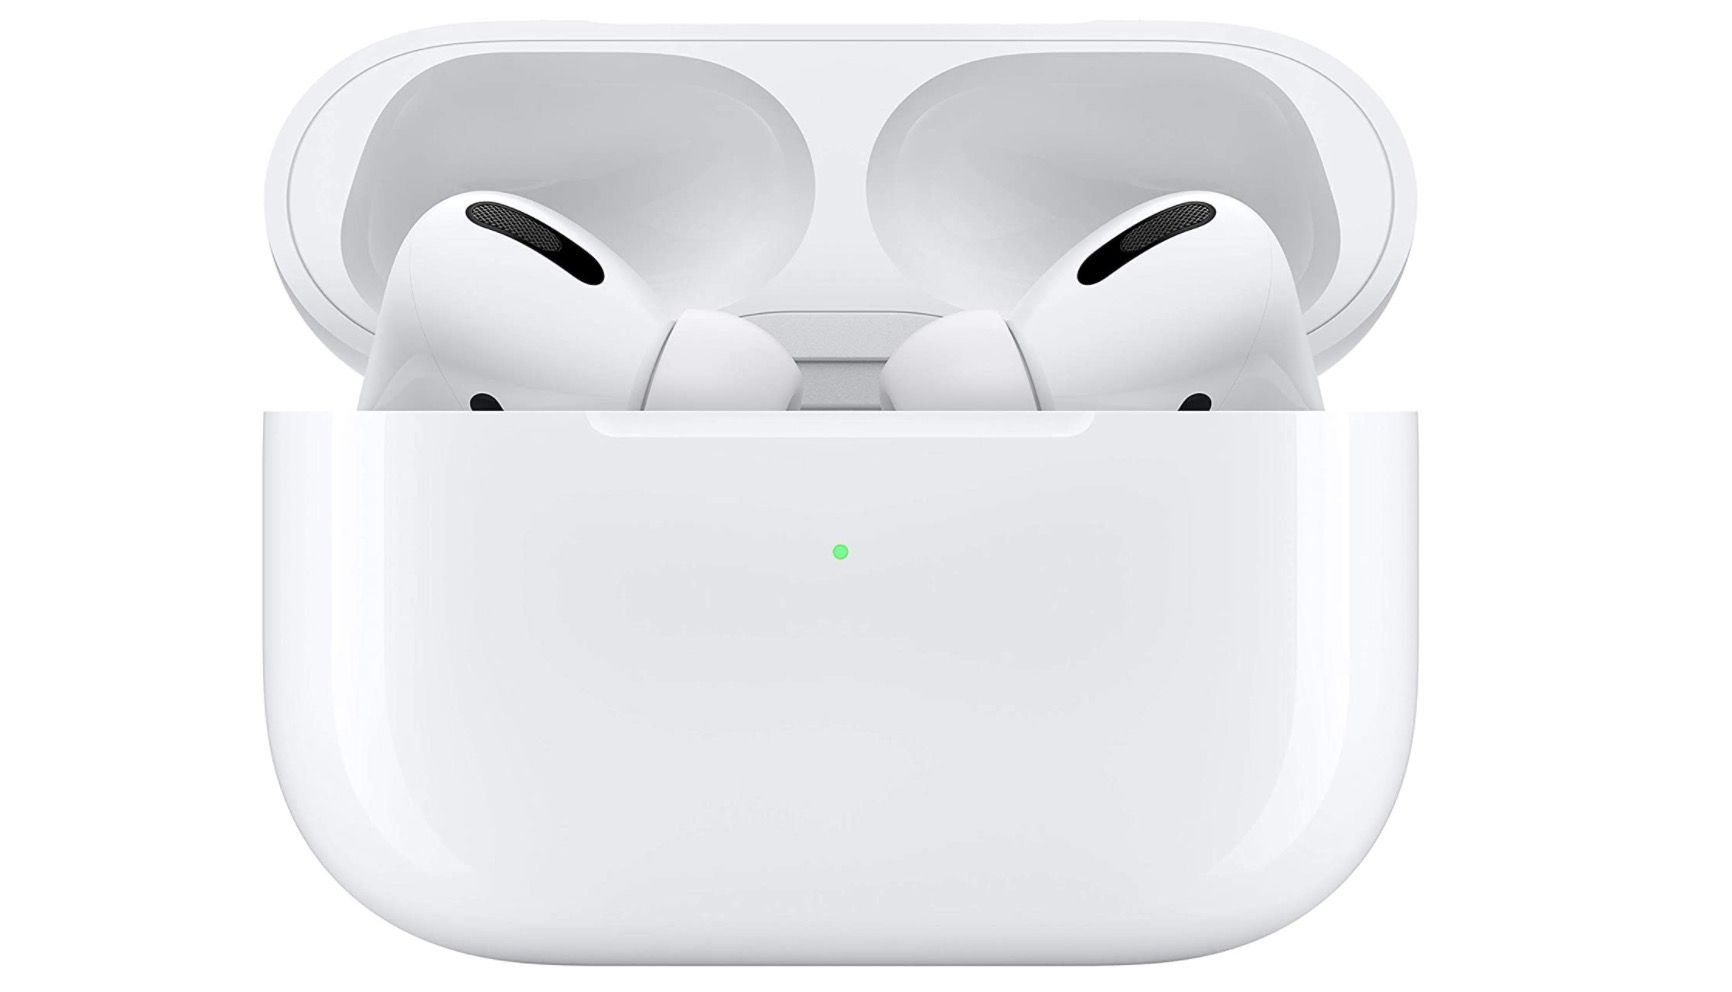 14. AirPods Pro